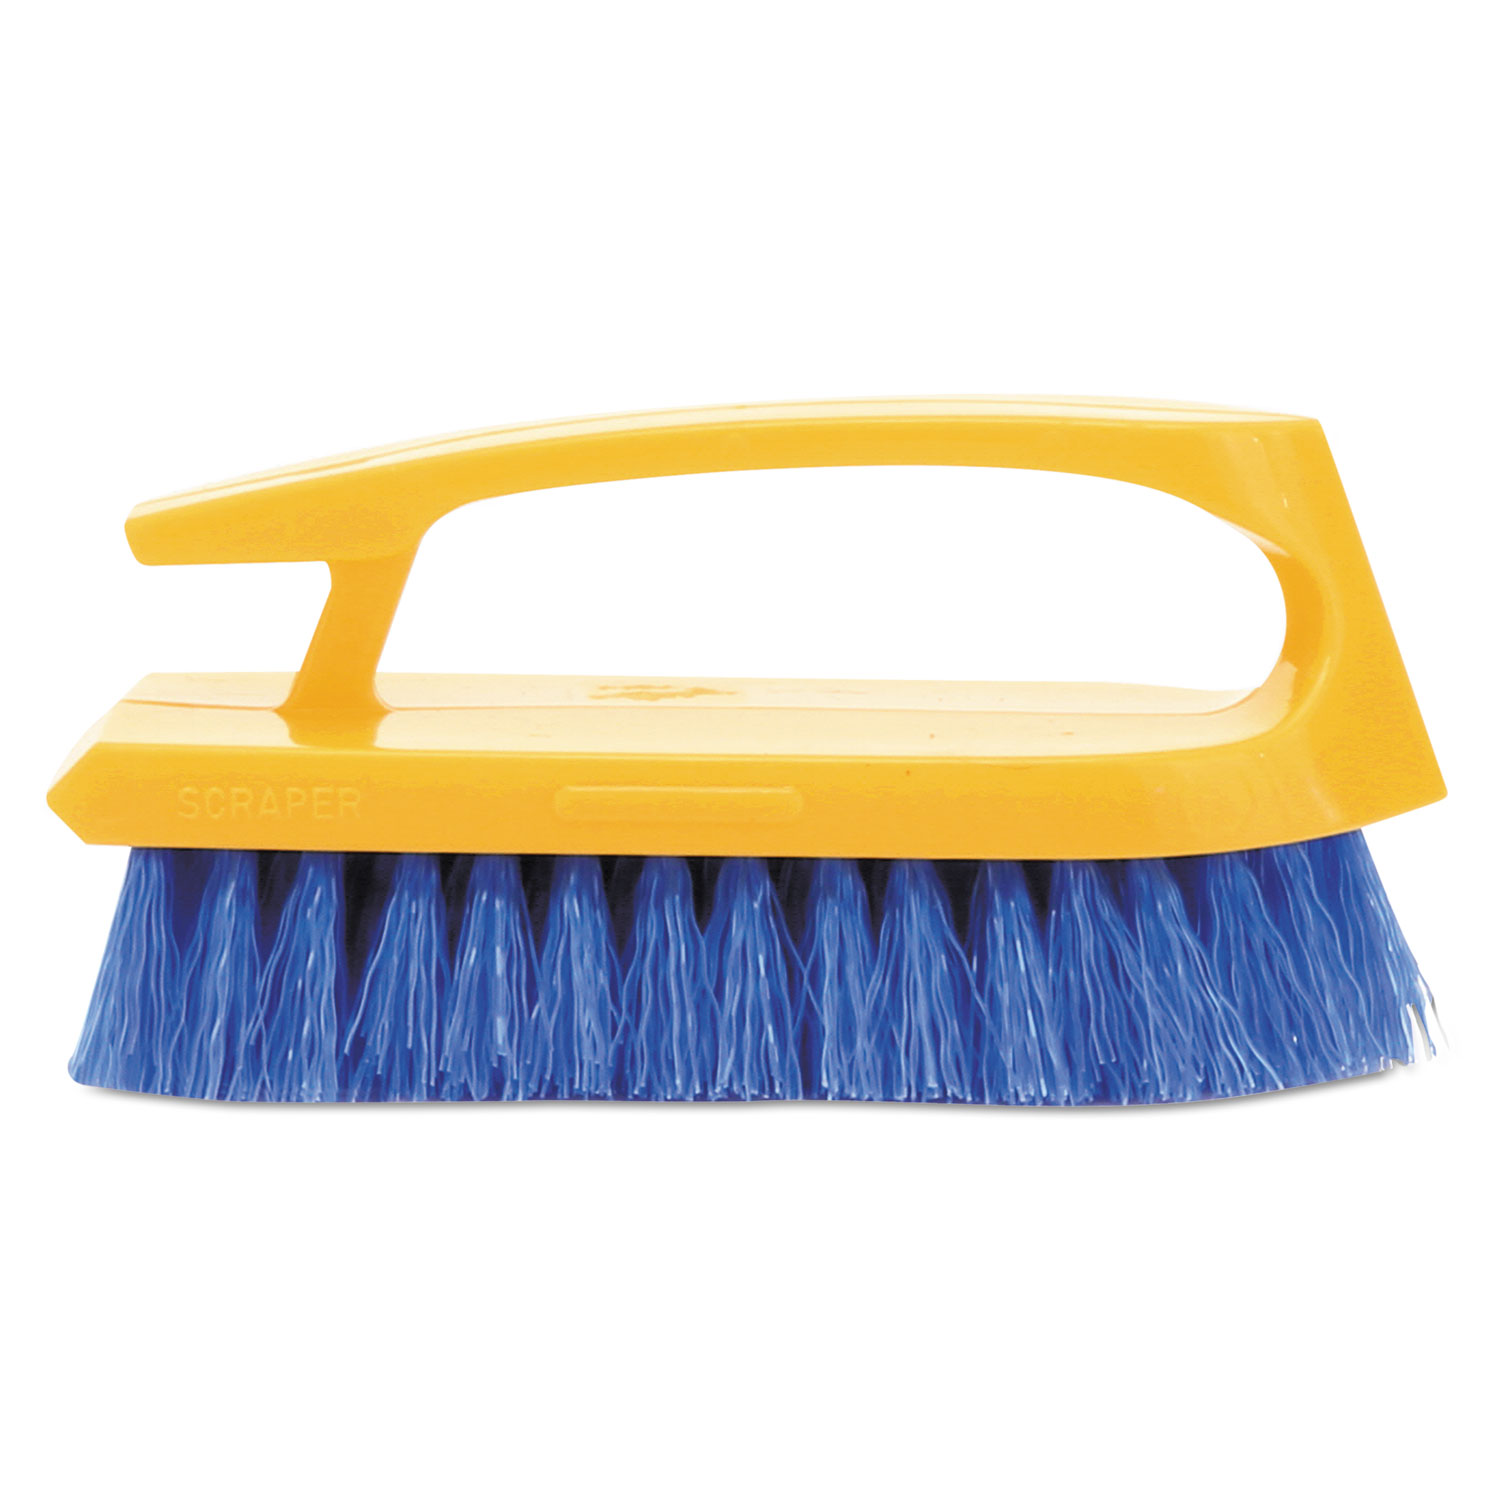 long handle scrub brush by rubbermaid commercial. Black Bedroom Furniture Sets. Home Design Ideas